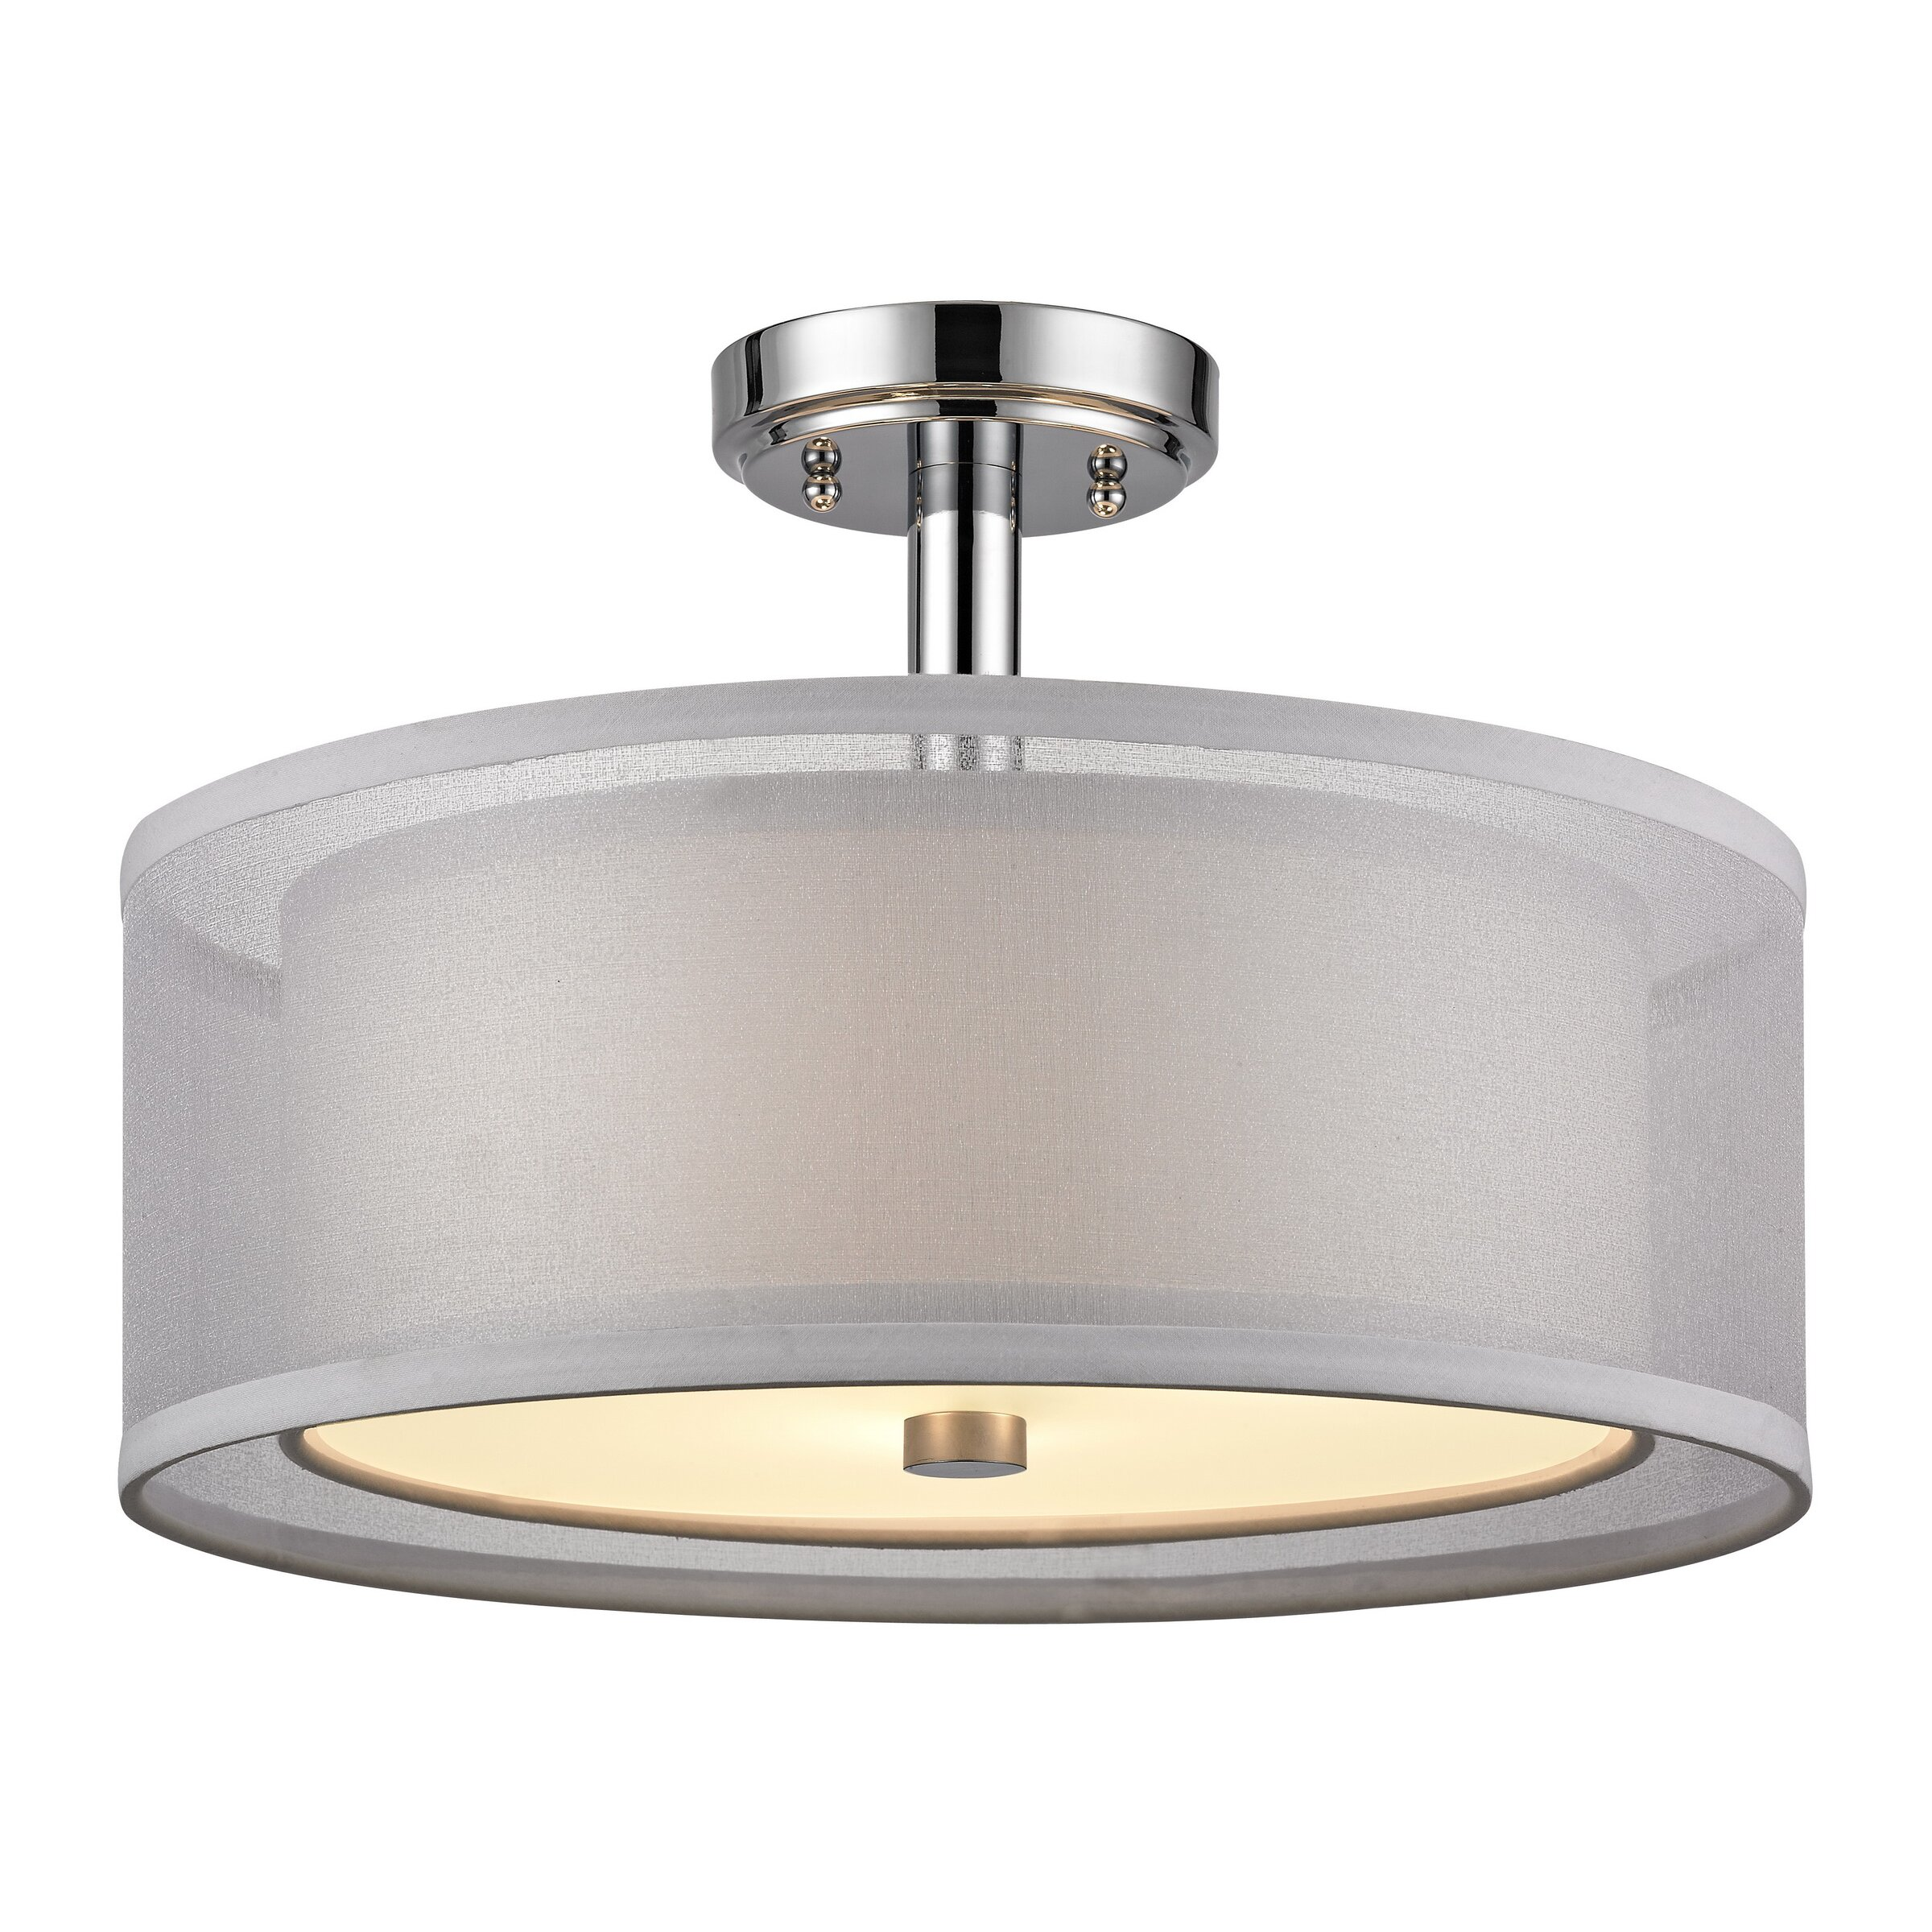 Modern Lighting Flush Mount home decor Mrsilva